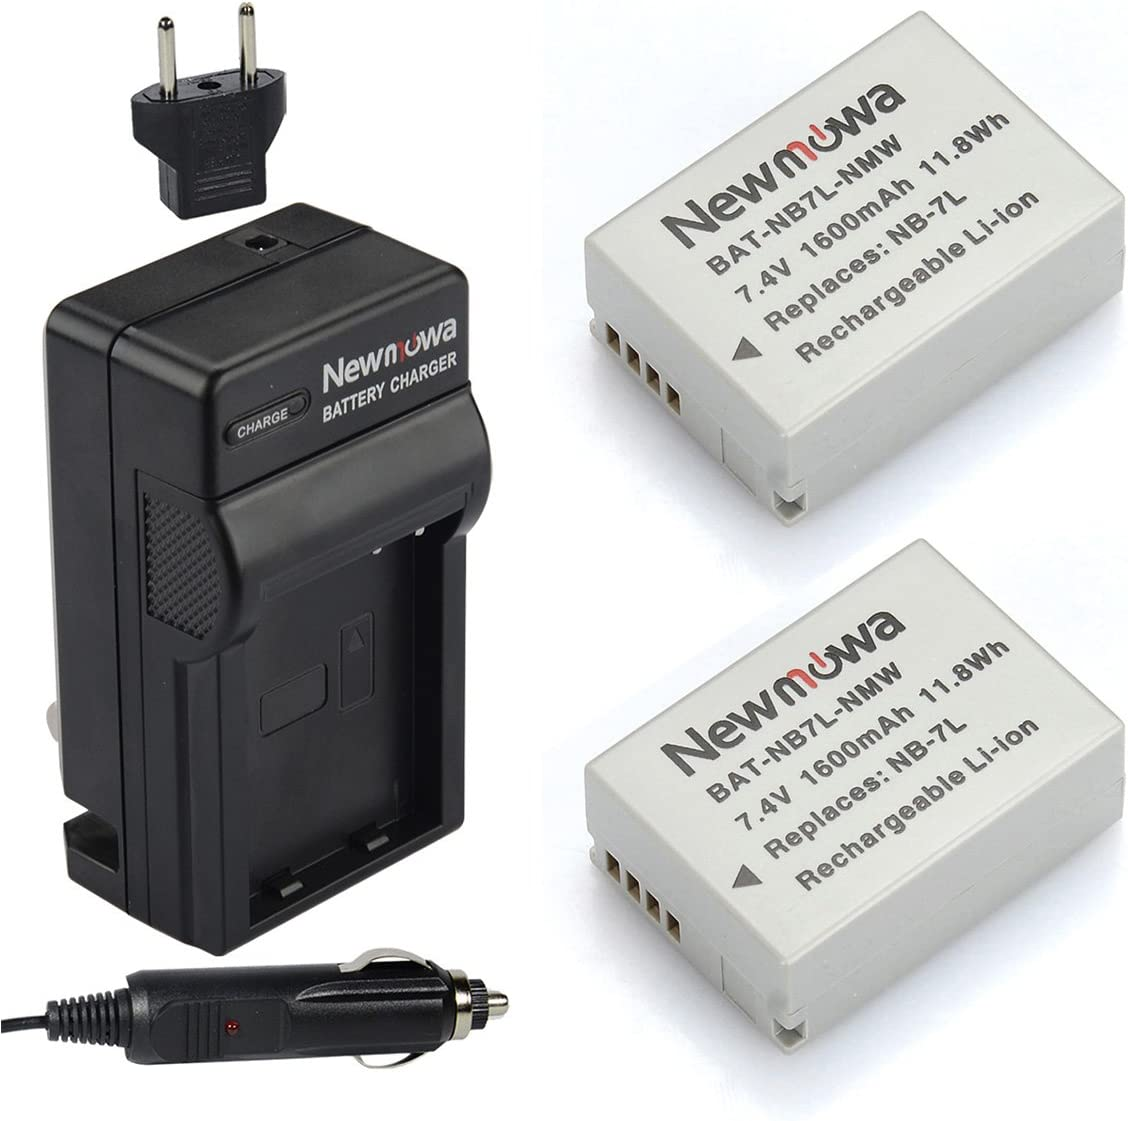 Charger Canon NB-7L Battery 1500mAh, 7.4V, Lithium-Ion 2X Pack Replacement for Canon NB-7L Digital Camera Battery and Charger